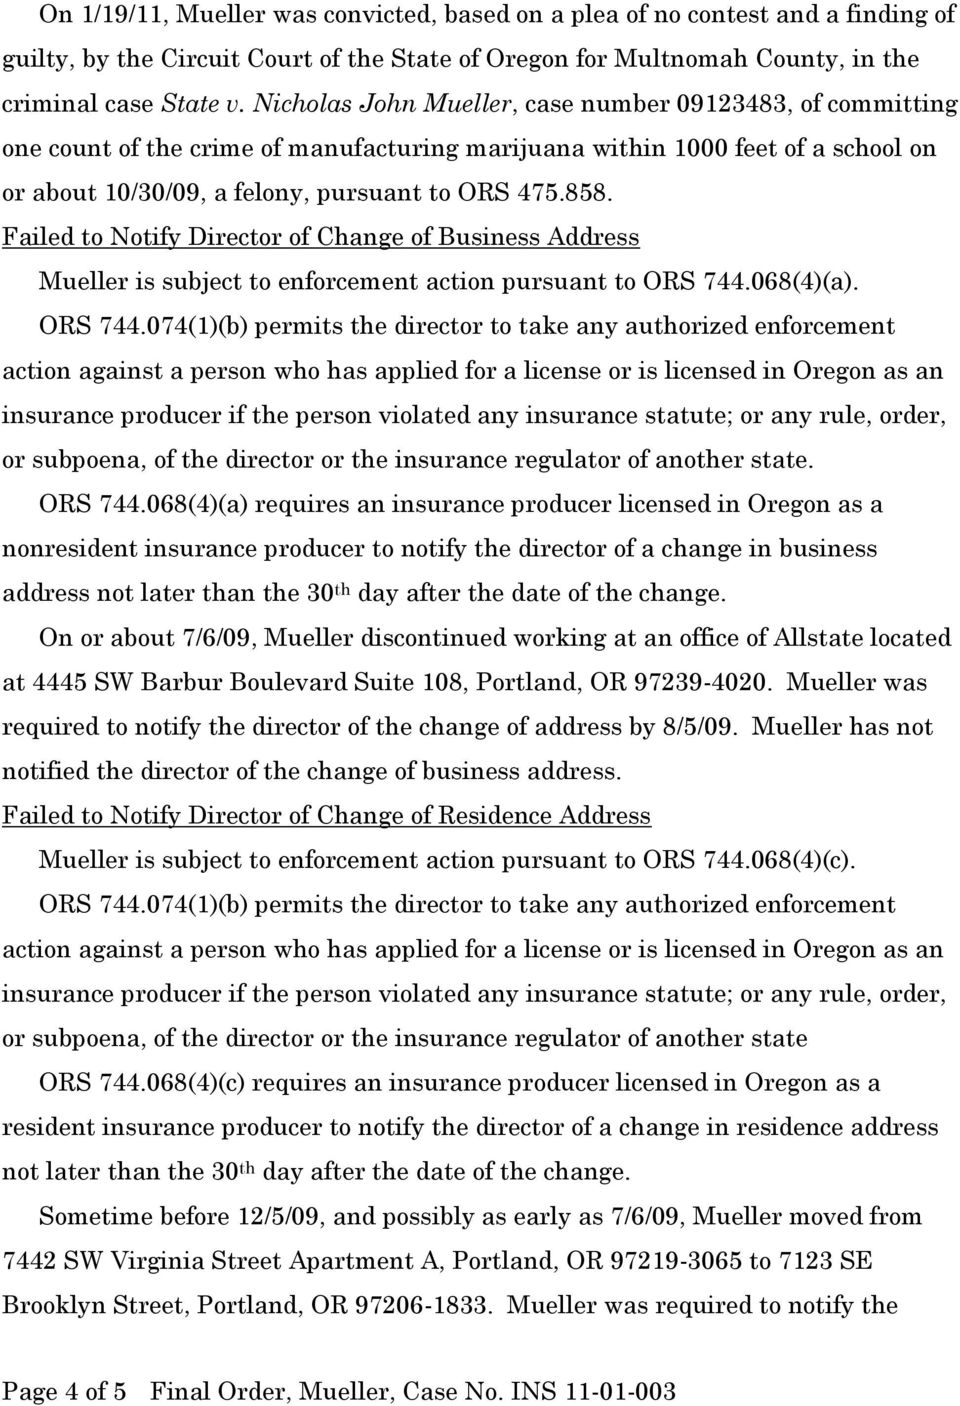 Failed to Notify Director of Change of Business Address Mueller is subject to enforcement action pursuant to ORS 744.068(4)(a).